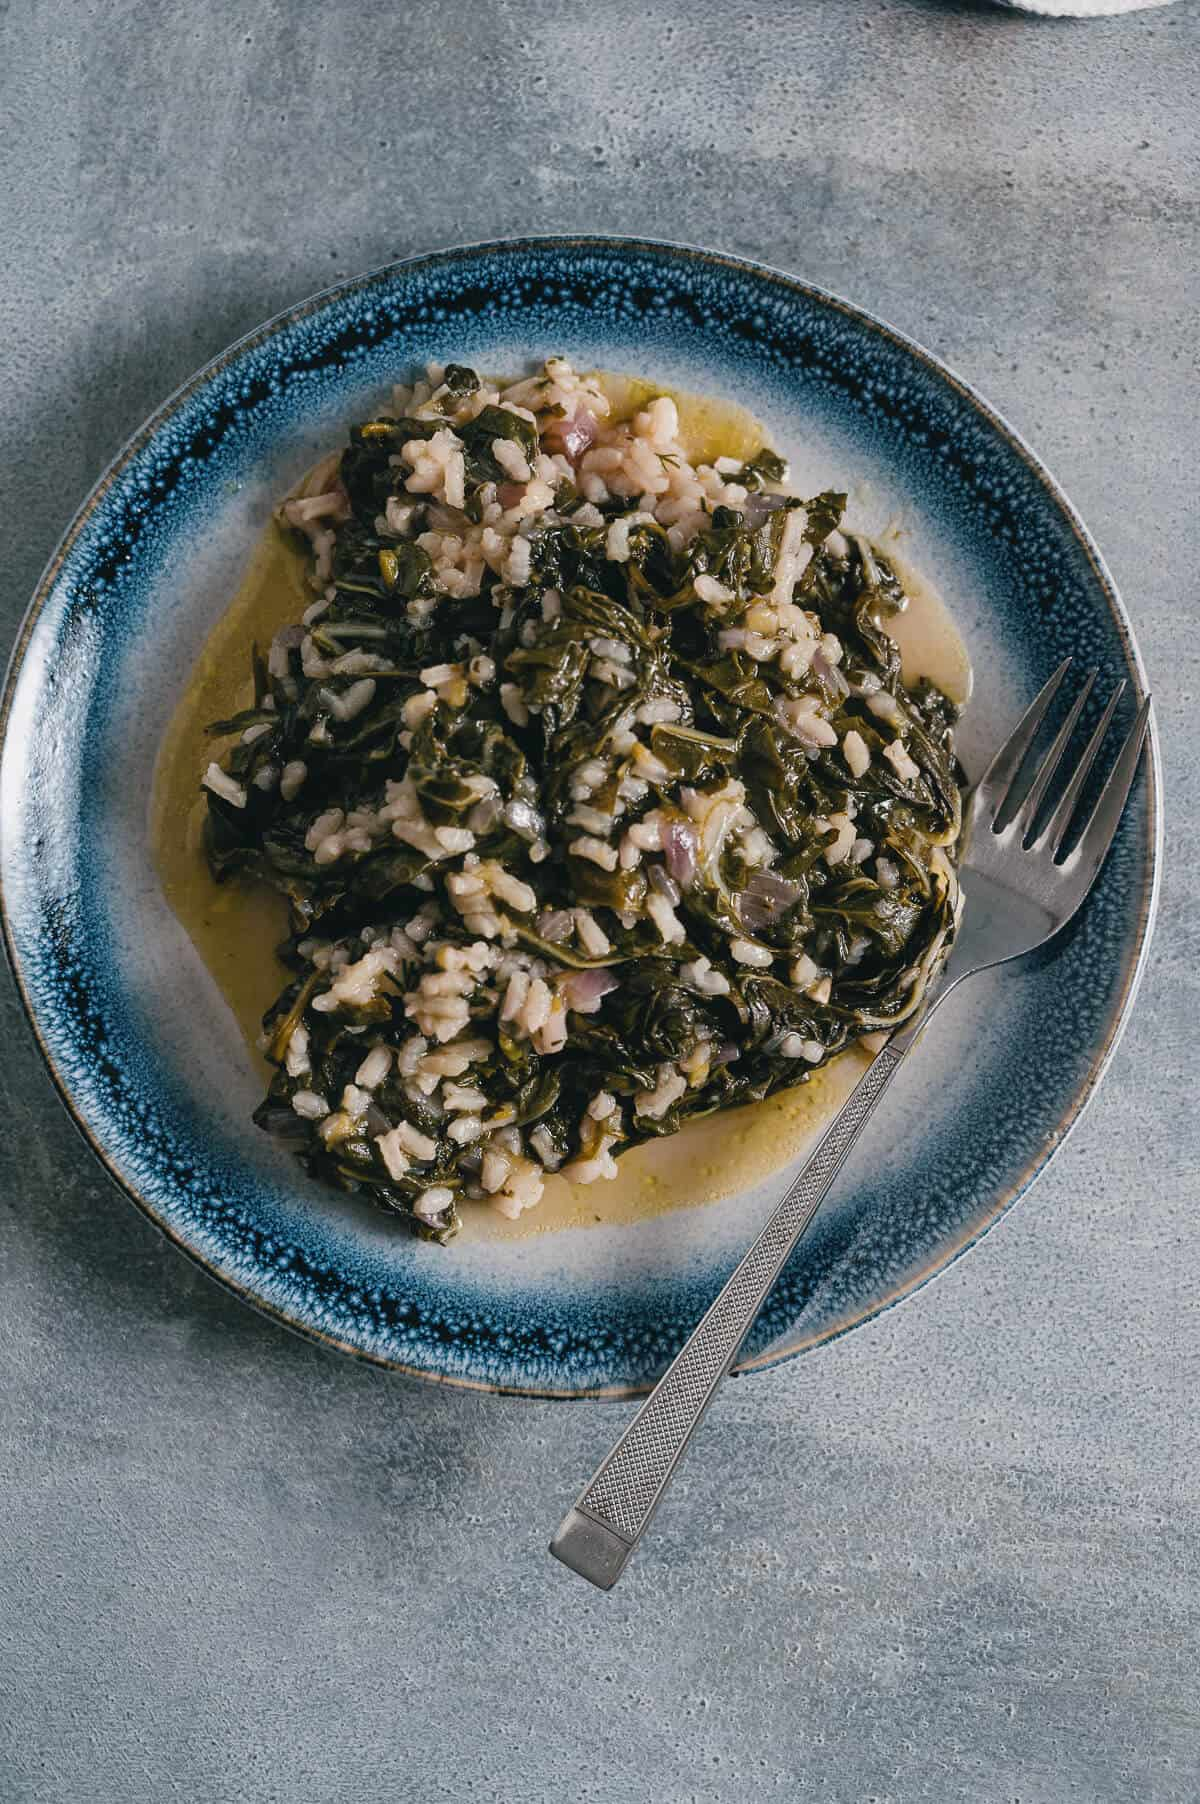 a plate filled with cooked spinach and rice known as spanakorizo.